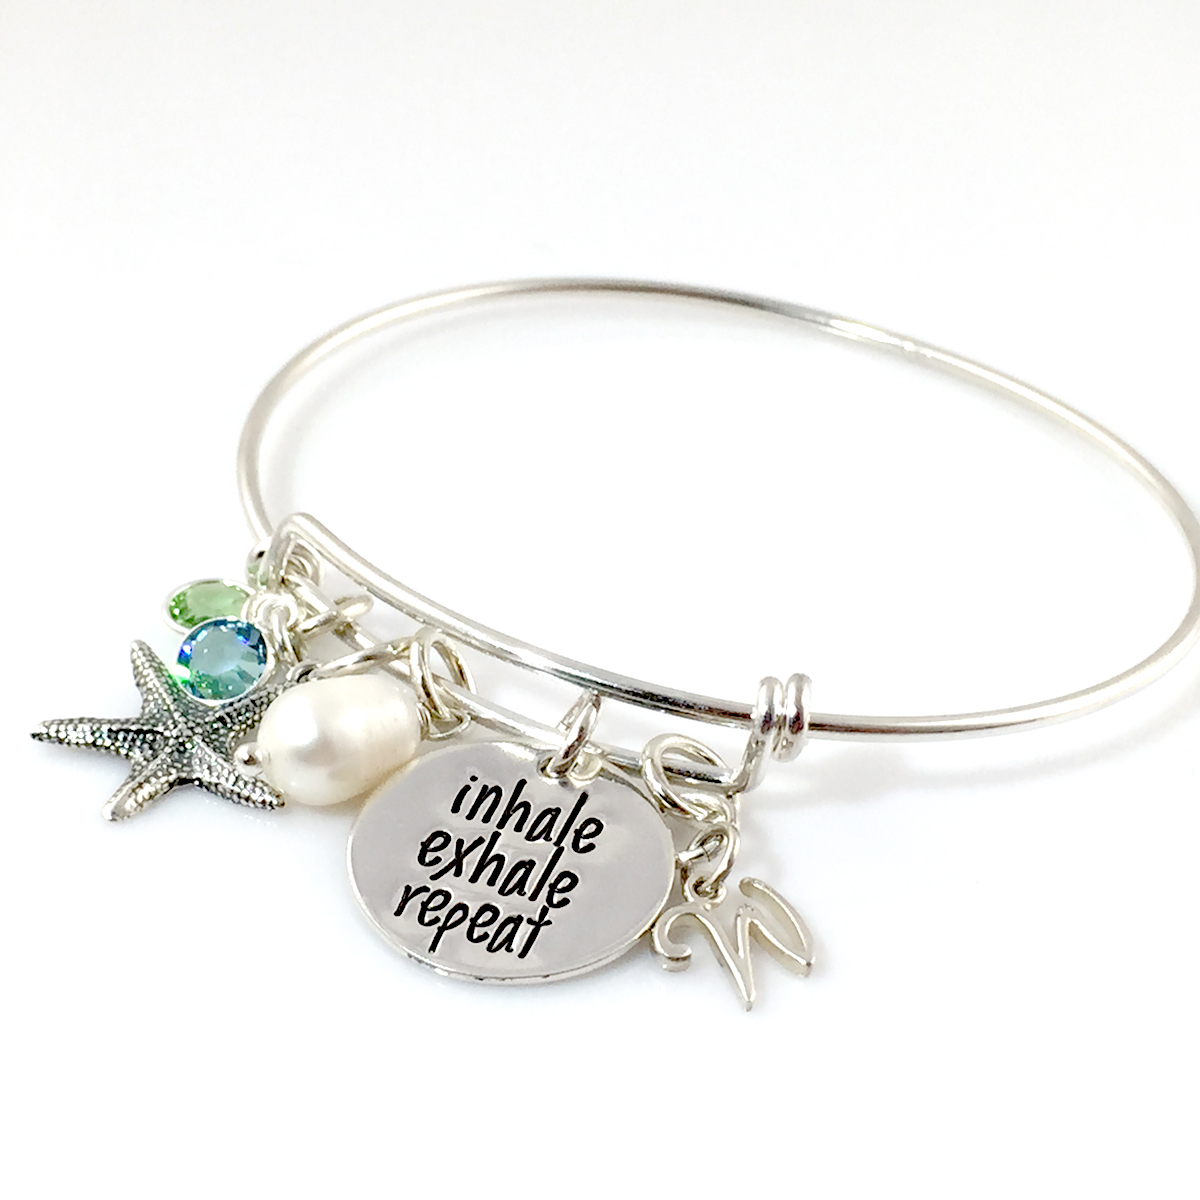 Inhale Exhale Repeat Simply Charming Bangle Bracelet